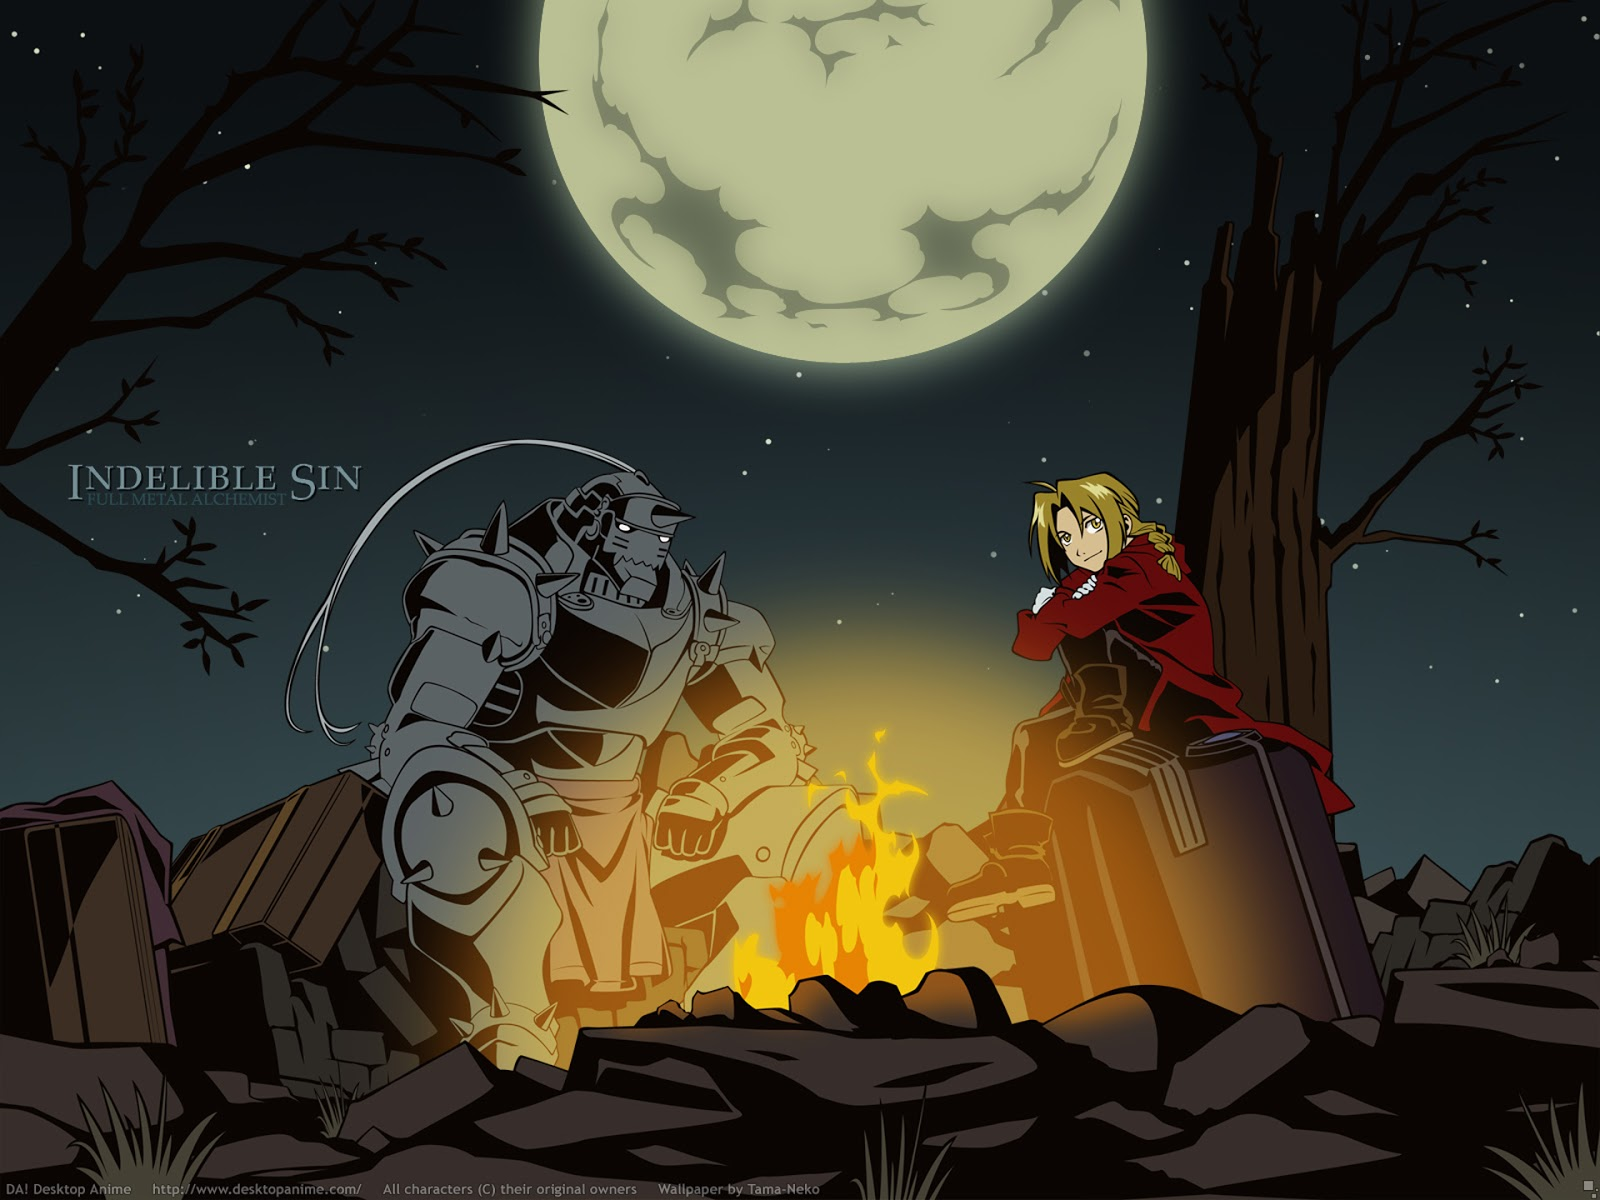 Fullmetal Alchemist Anime Night Fire Camping Full Moon HD Wallpaper 1600x1200